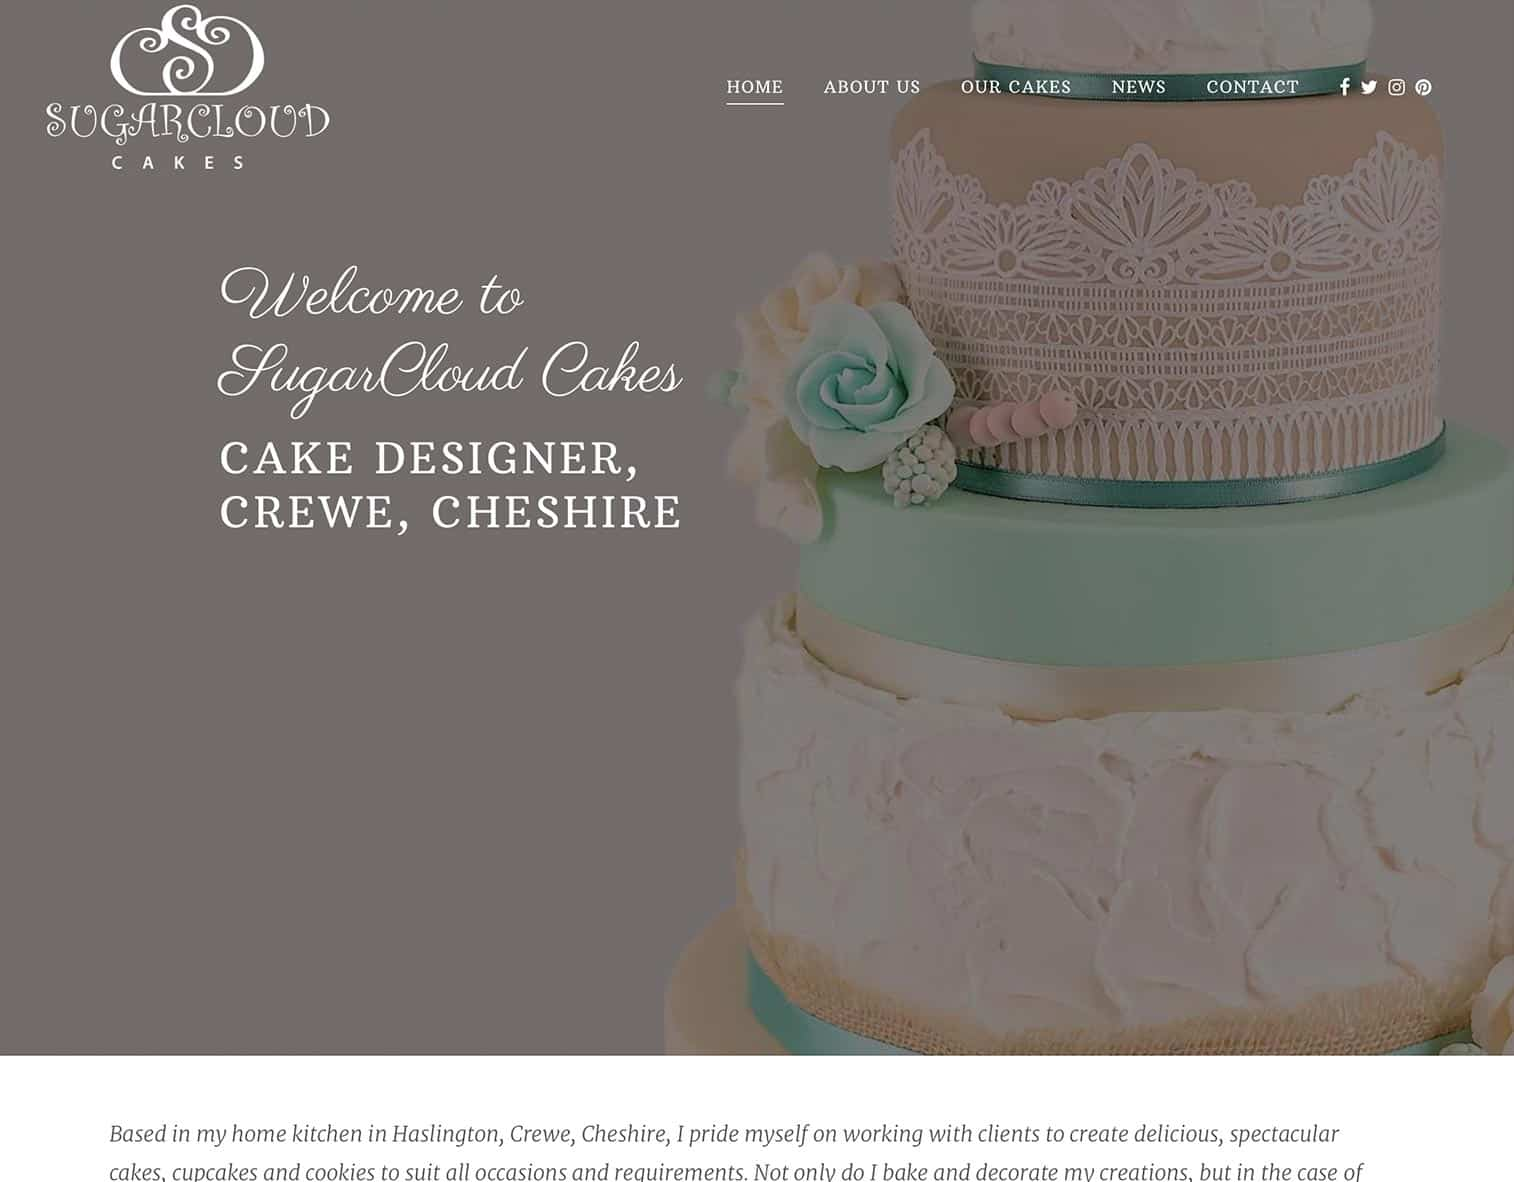 Sugarcloud cakes crewe website